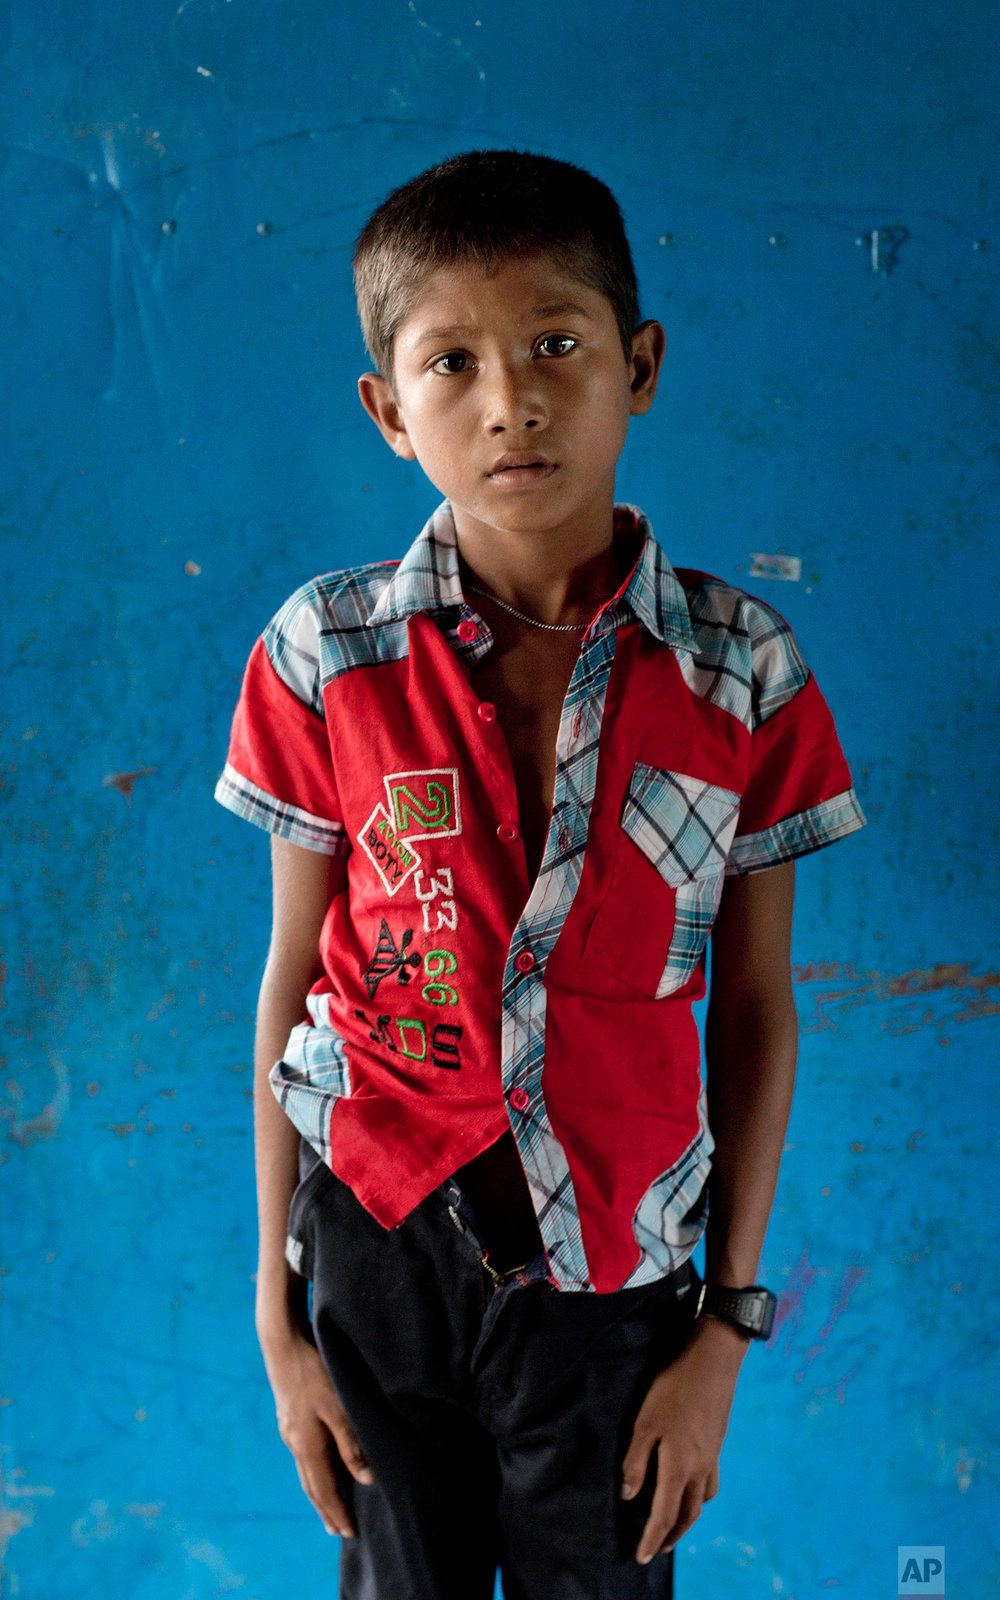 In this Oct. 1, 2017, photo, survivor of a boat capsize Mohamed Junaid, from Myanmar's Moidaung Village, stands for a photograph at a transit shelter at Kutupalong camp for newly arrived Rohingya refugees in Bangladesh. Junaid lost his mother and two siblings when the boat they were traveling on, to escape from Myanmar, capsized on Sept. 28. He survived along with his father Lalu Mia and two other siblings. (AP Photo/Gemunu Amarasinghe)